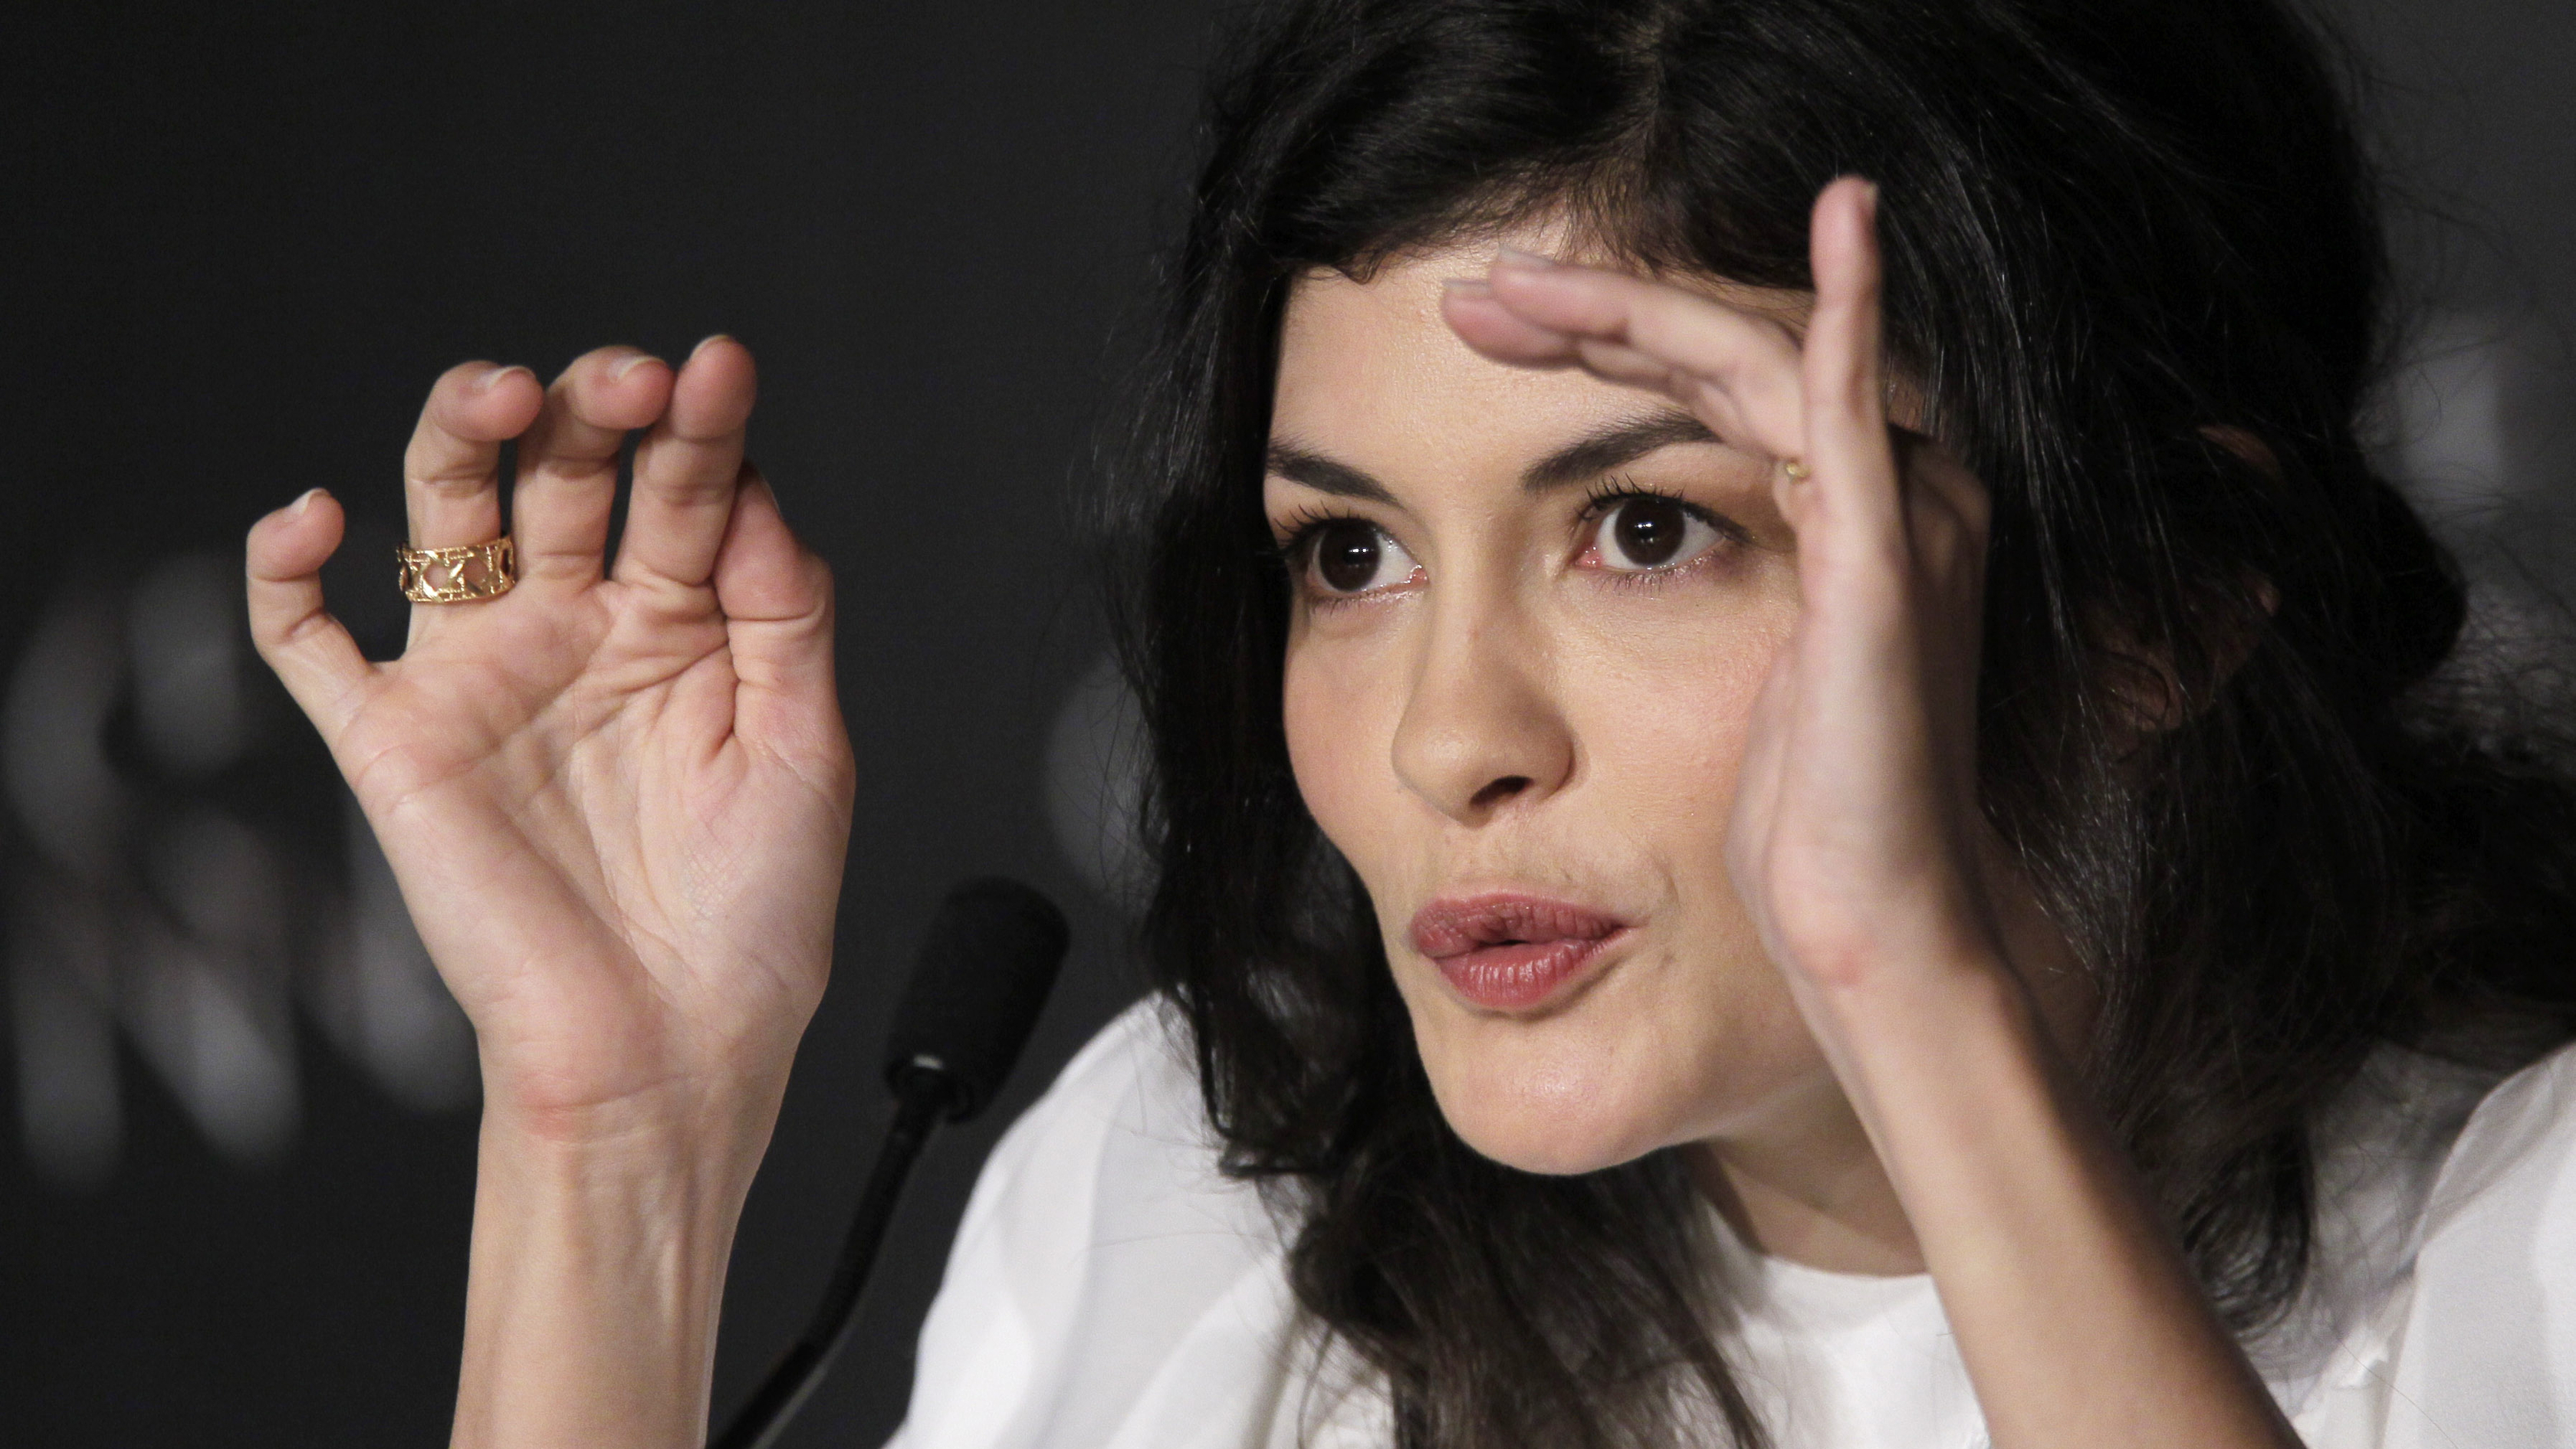 audrey tautou full hd wallpaper and background image | 3360x1890